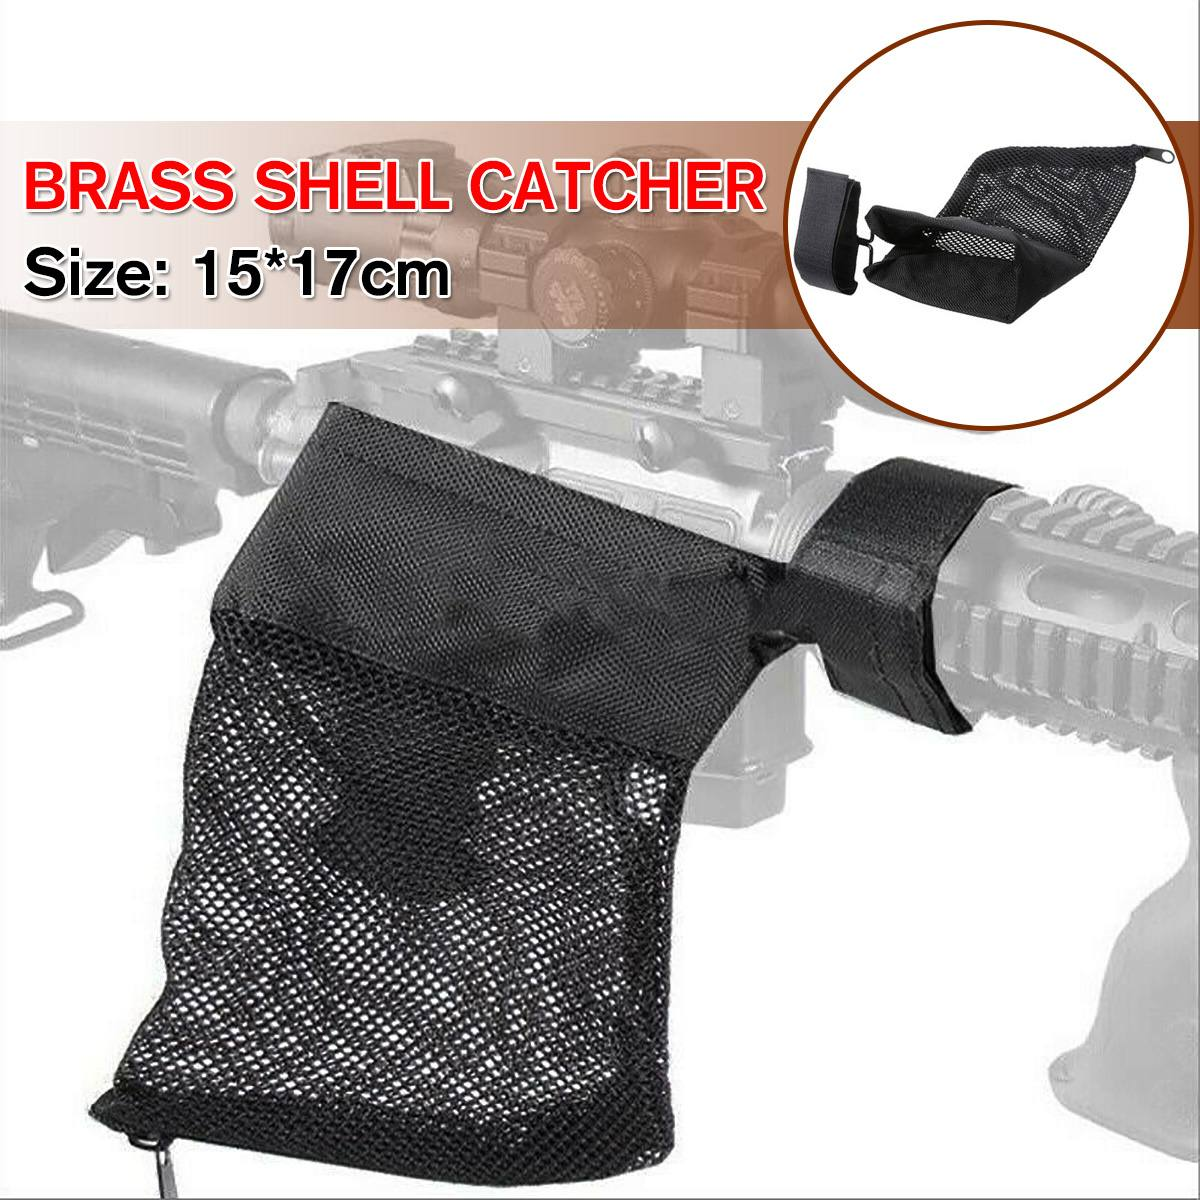 Hunting Accessories Tactical Mesh Bag Military Gear Brass Shell Catcher Mesh Trap Nylon Double Mesh Bag